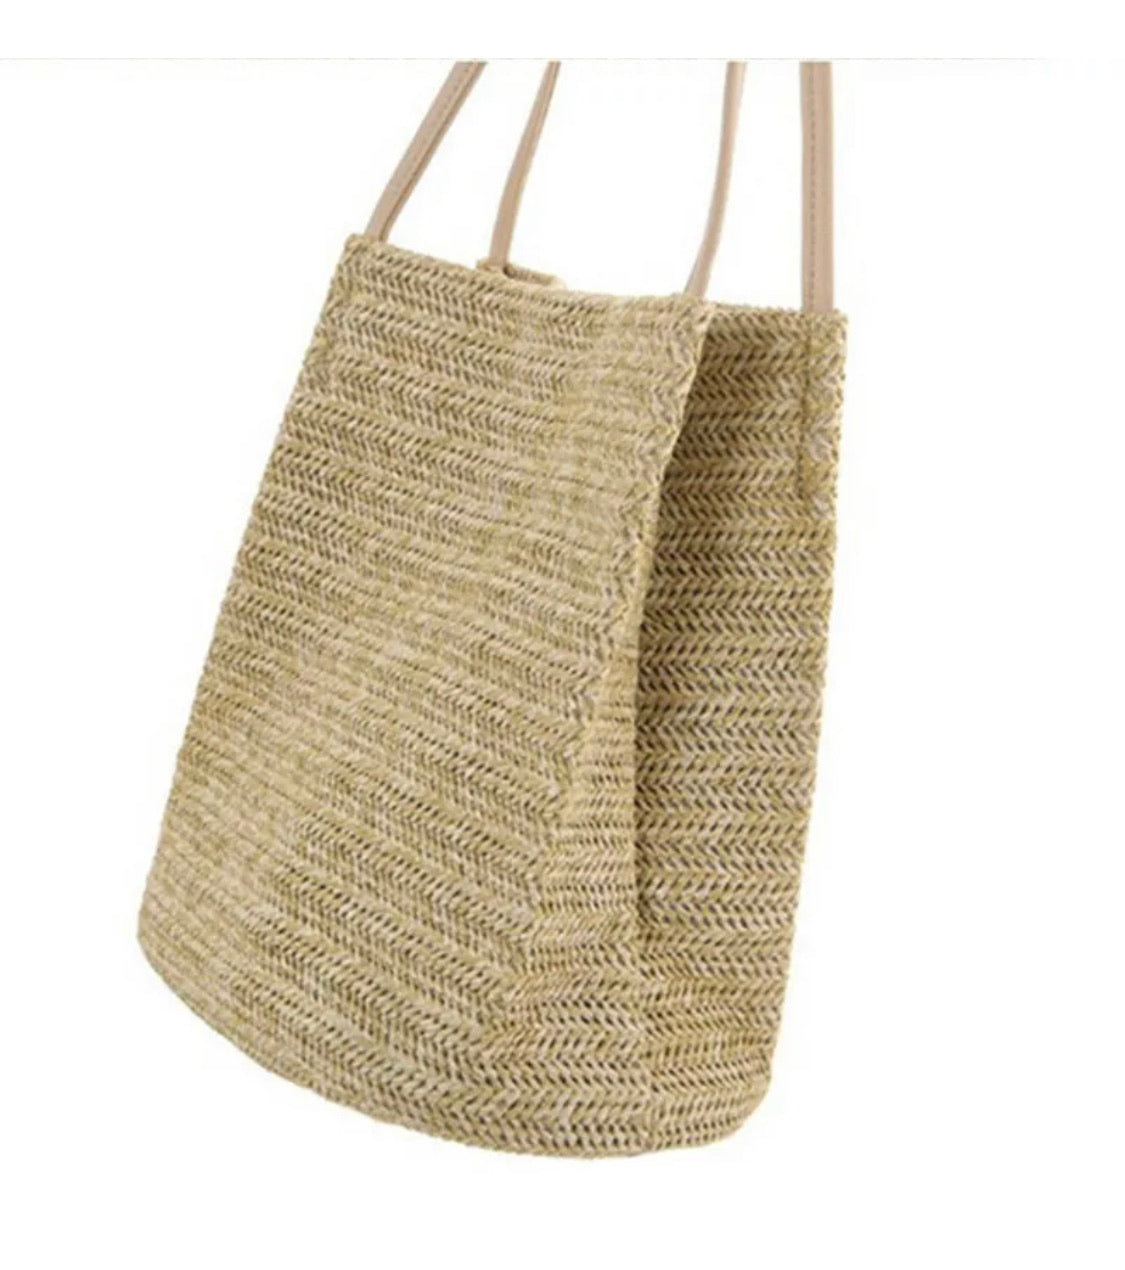 Straw bag SAMPLE - ONE ONLY